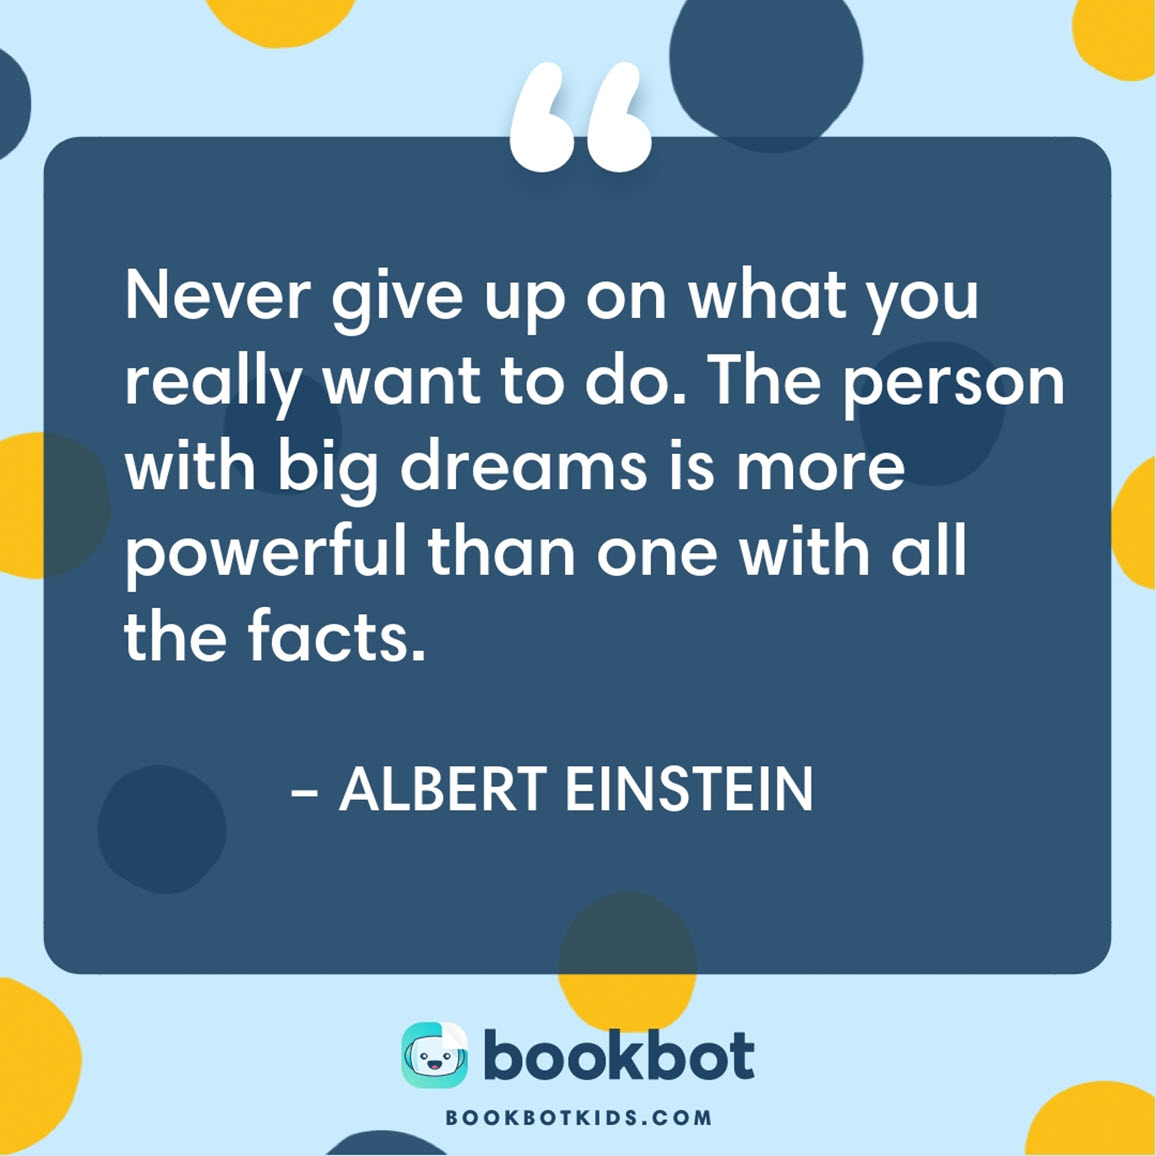 Never give up on what you really want to do. The person with big dreams is more powerful than one with all the facts. – Albert Einstein